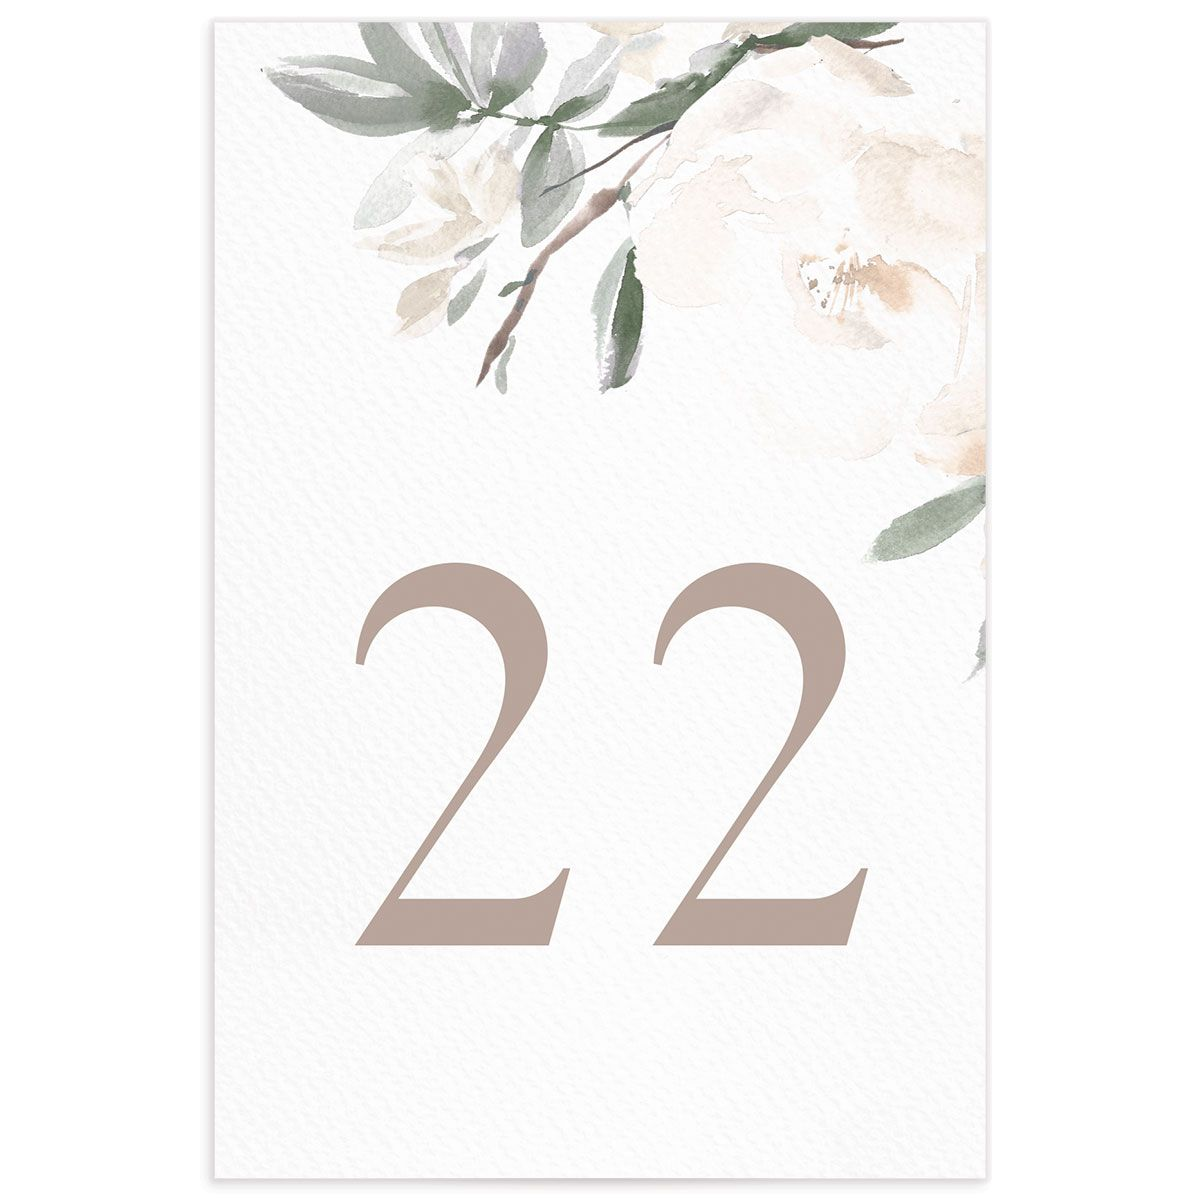 Elegant Garden table numbers in green